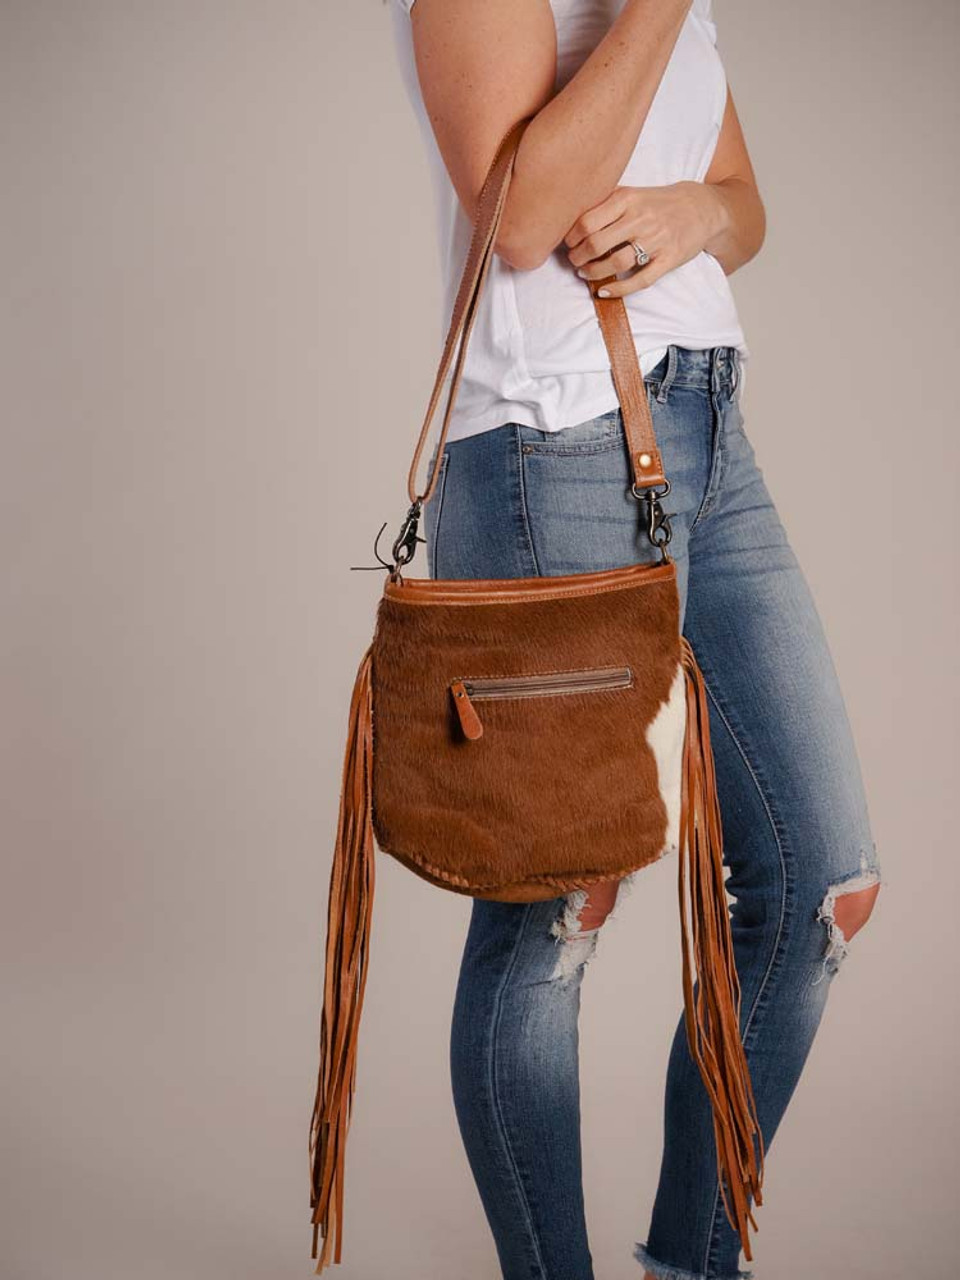 Retro cowhide bag with leather stitching and long fringe. Zipper pocket at back; zipper close at top; interior is fully lined and has one zipper pocket and two slip pockets